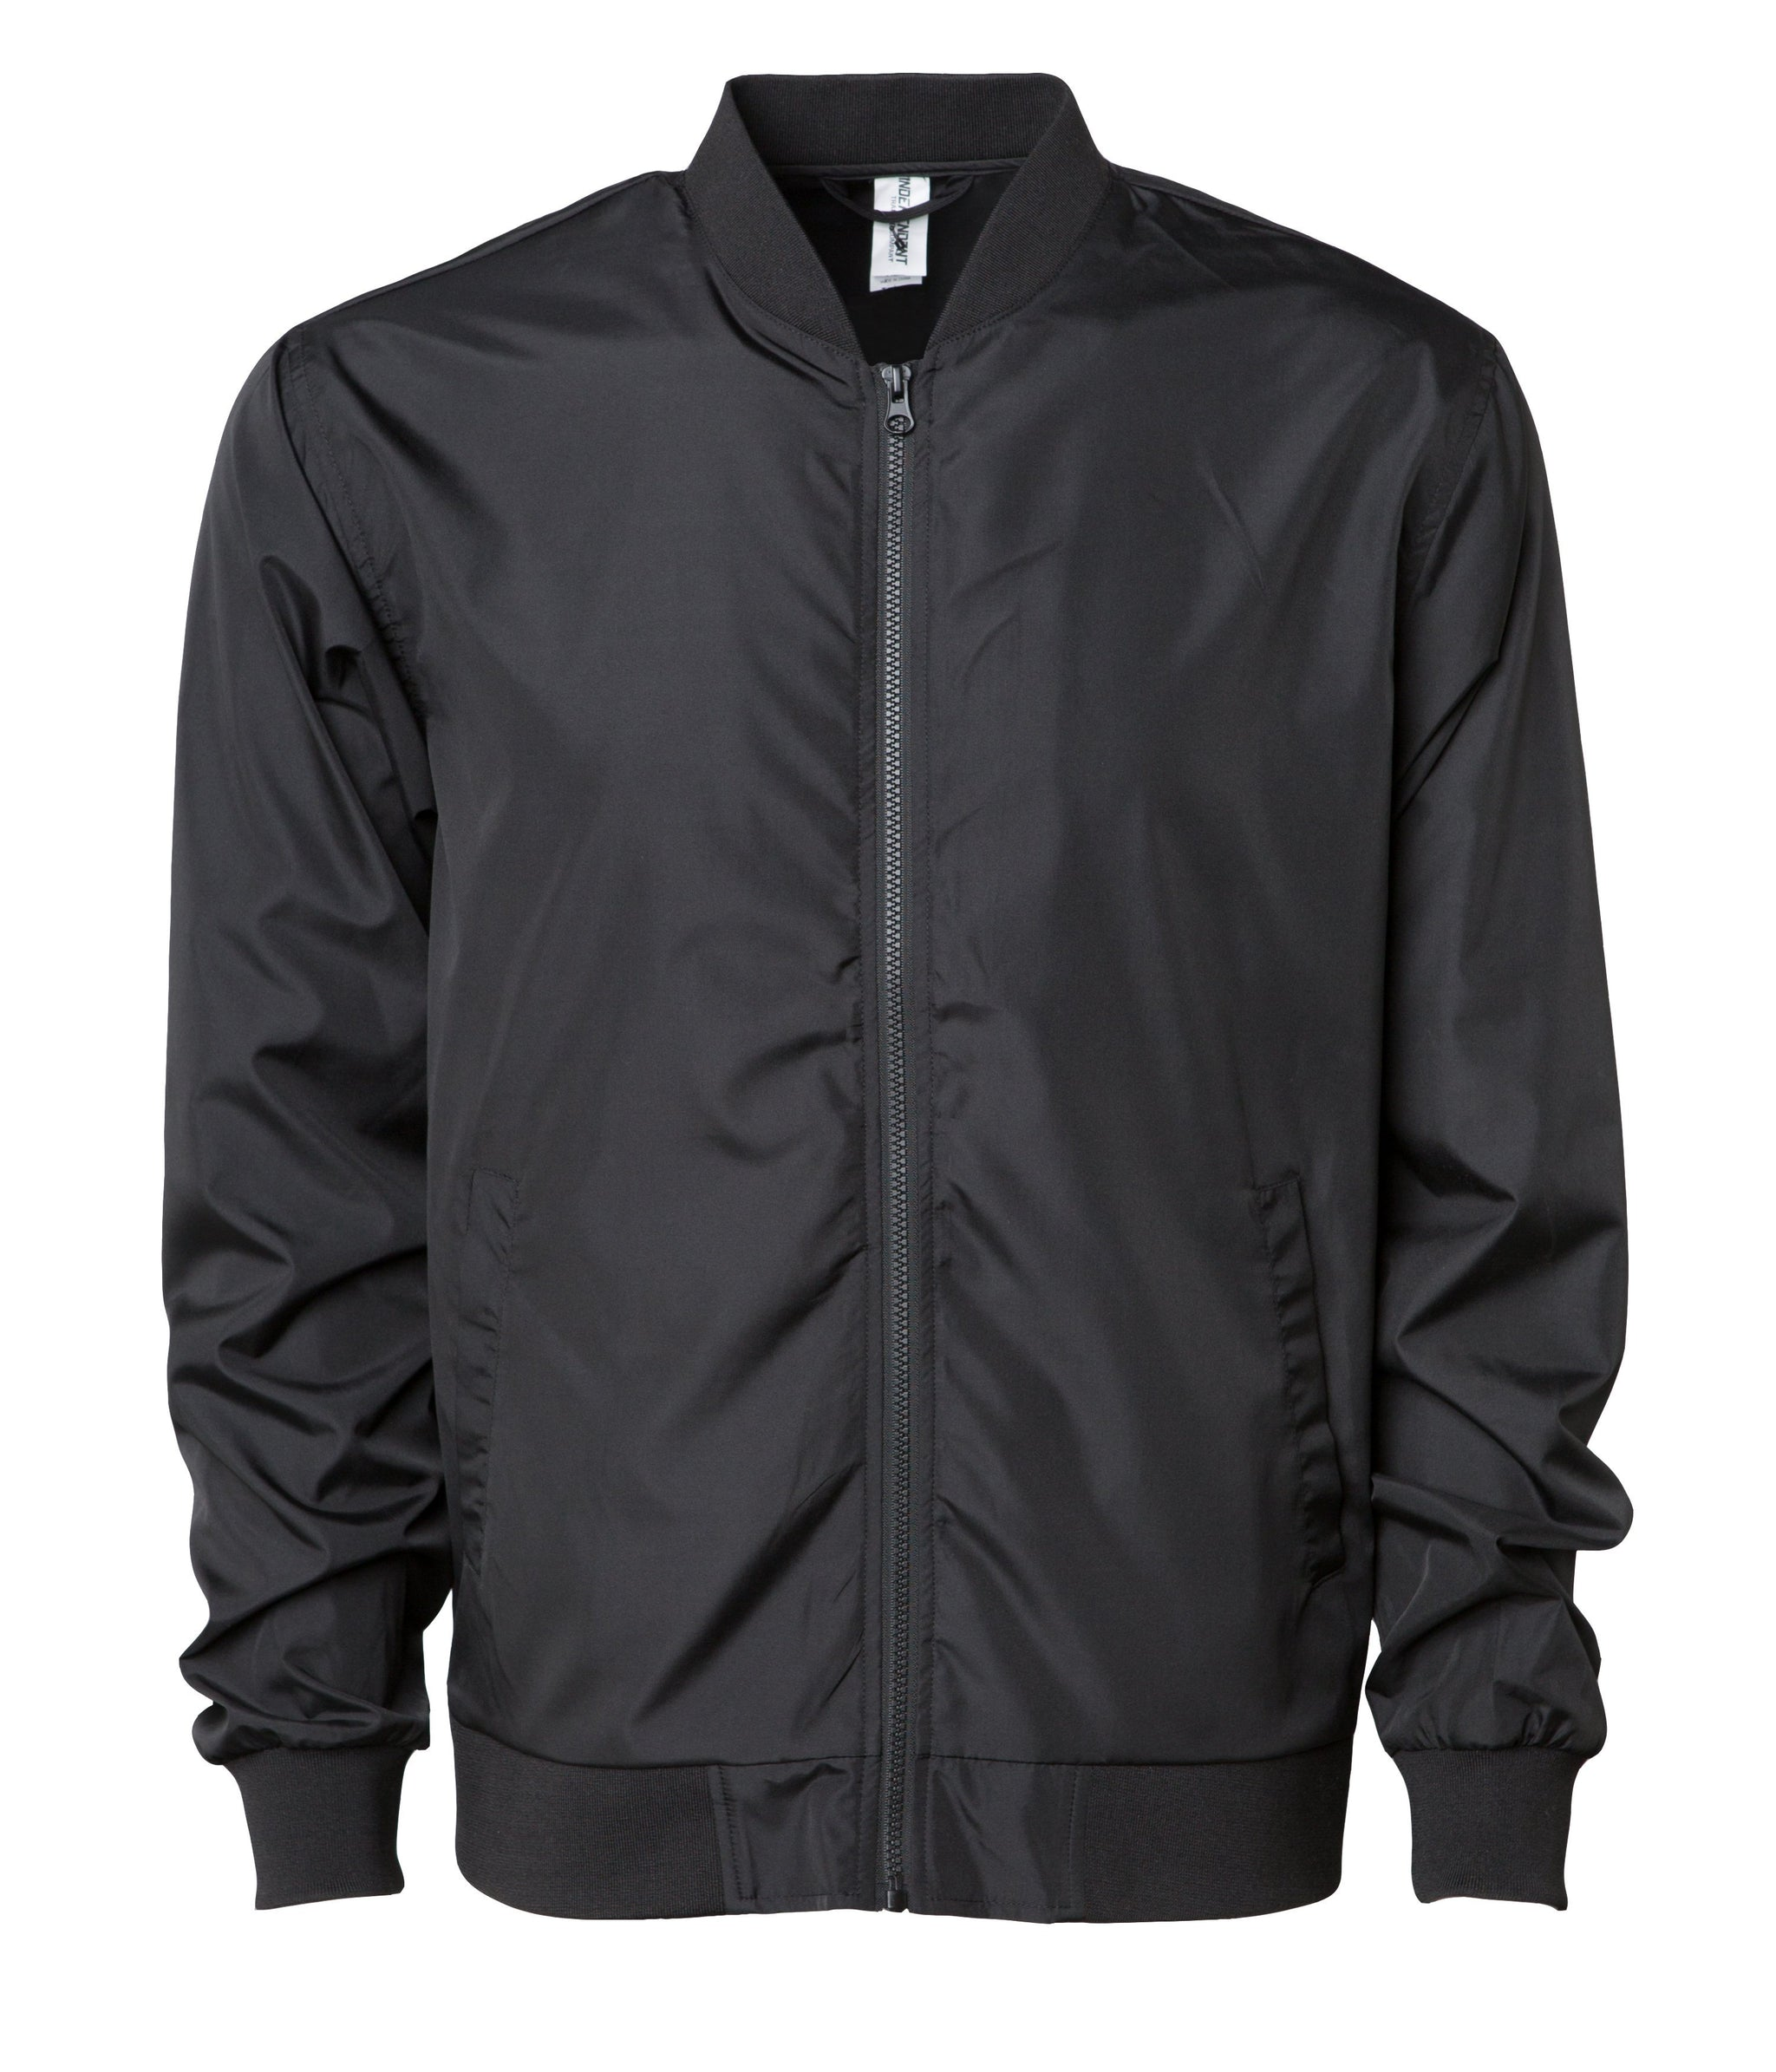 12f86ce7c4c72 Lightweight Bomber Jacket | Independent Trading Company